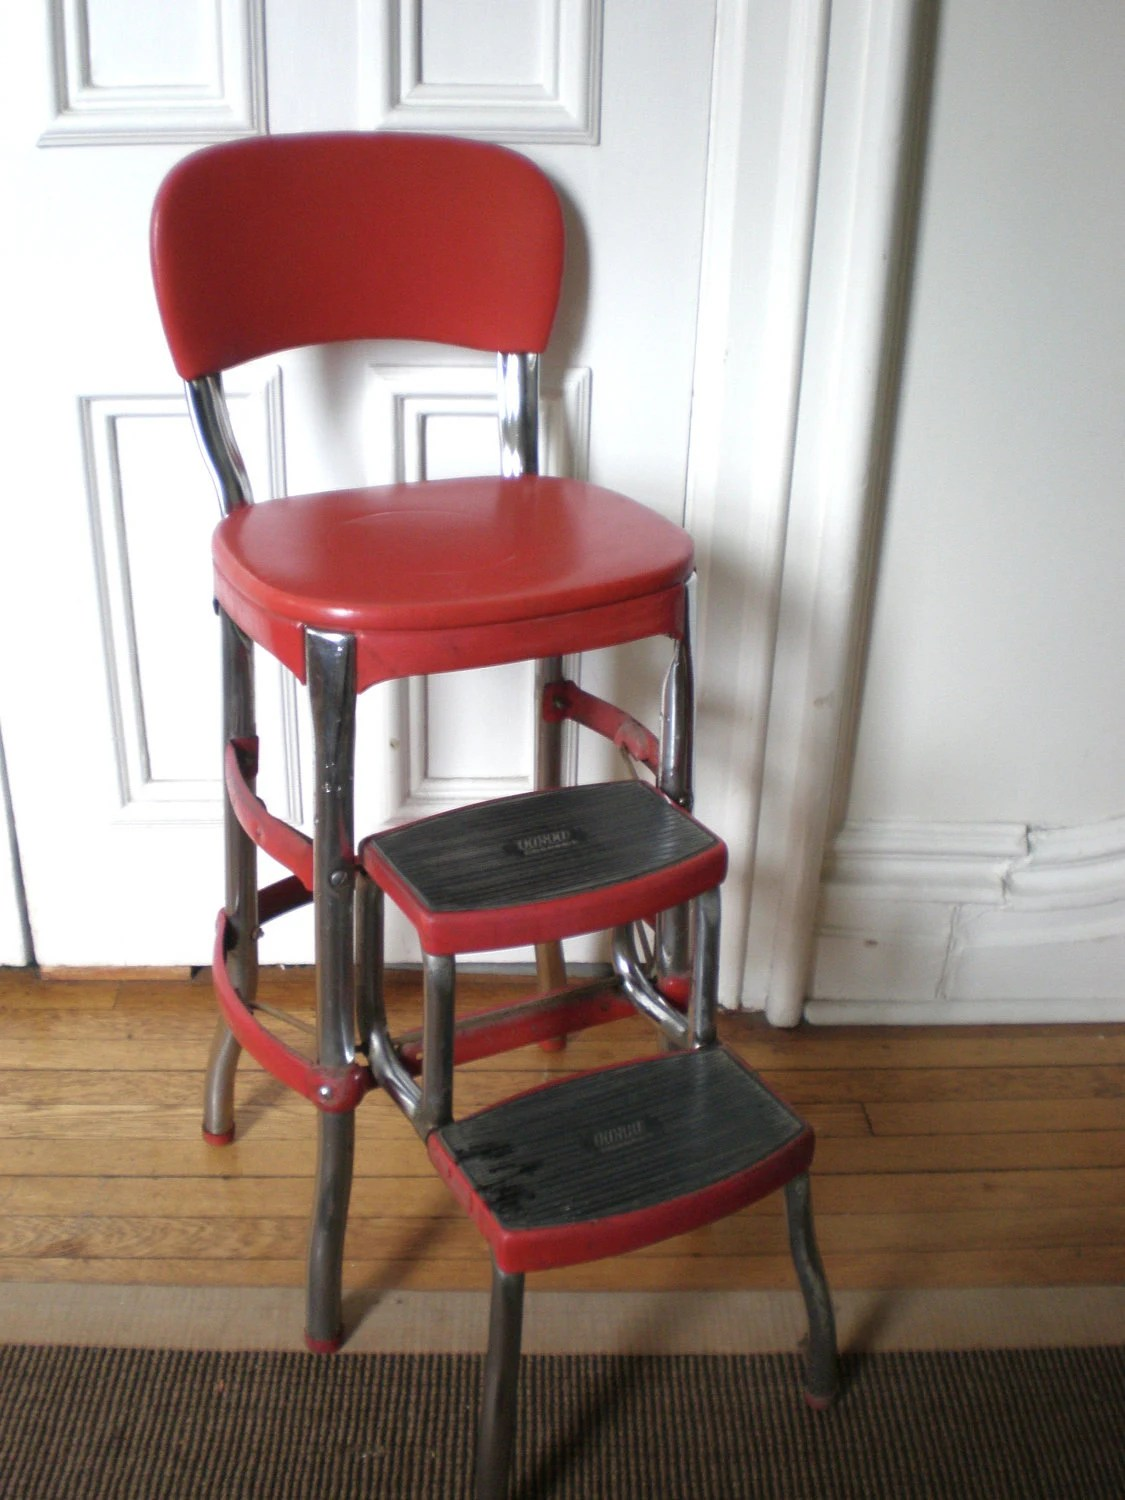 kitchen step stool with seat wooden play sets red cosco chair